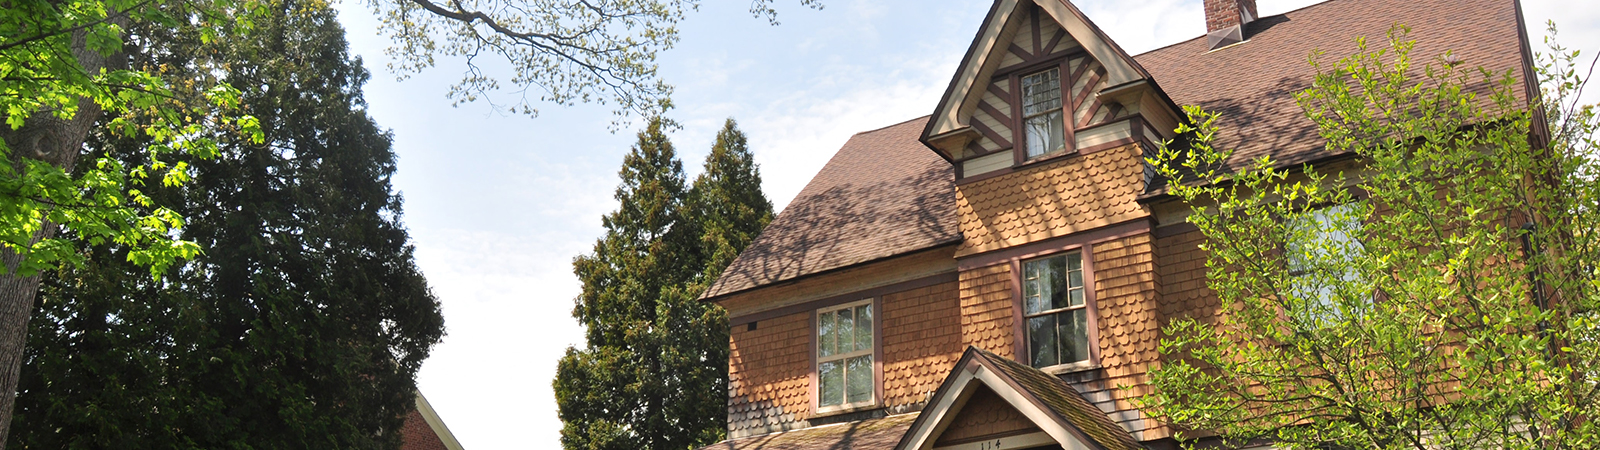 Residential roofing in Arvada Colorado